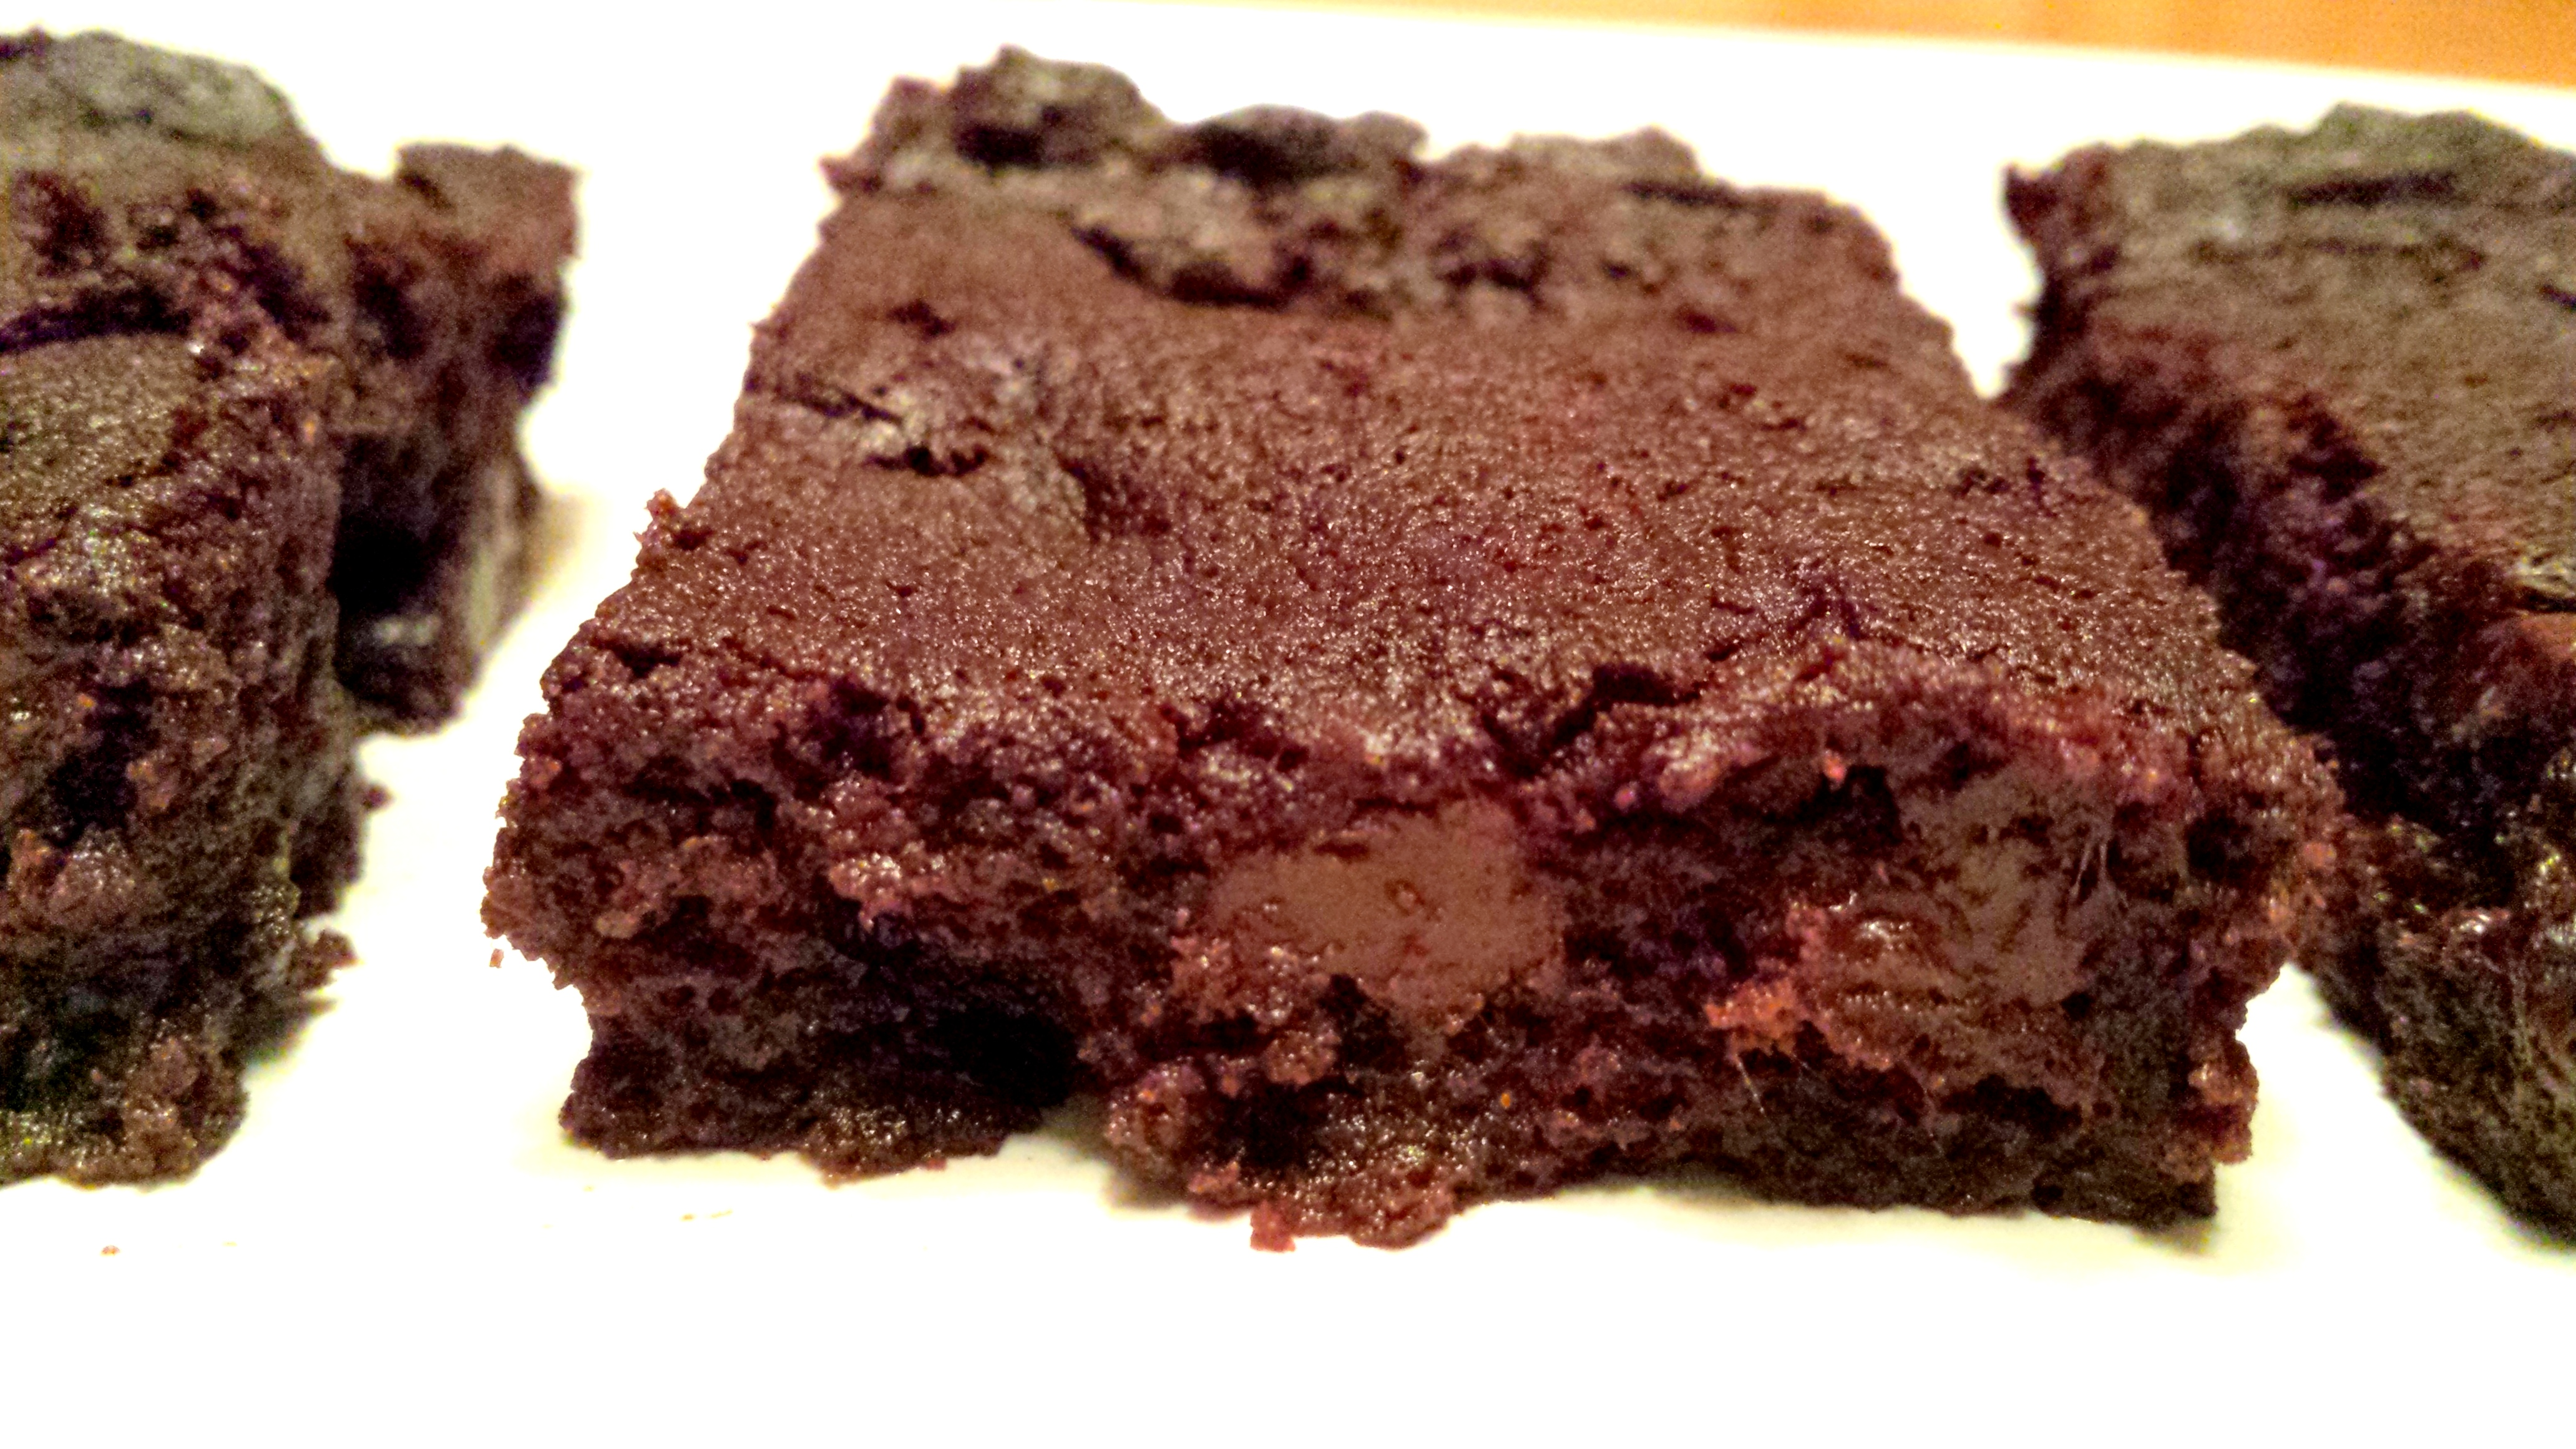 These are dairy free, nut free, sugar free, grain free, gluten free, flourless, low carb, paleo, and a THM S. And despite all that they taste amazing.